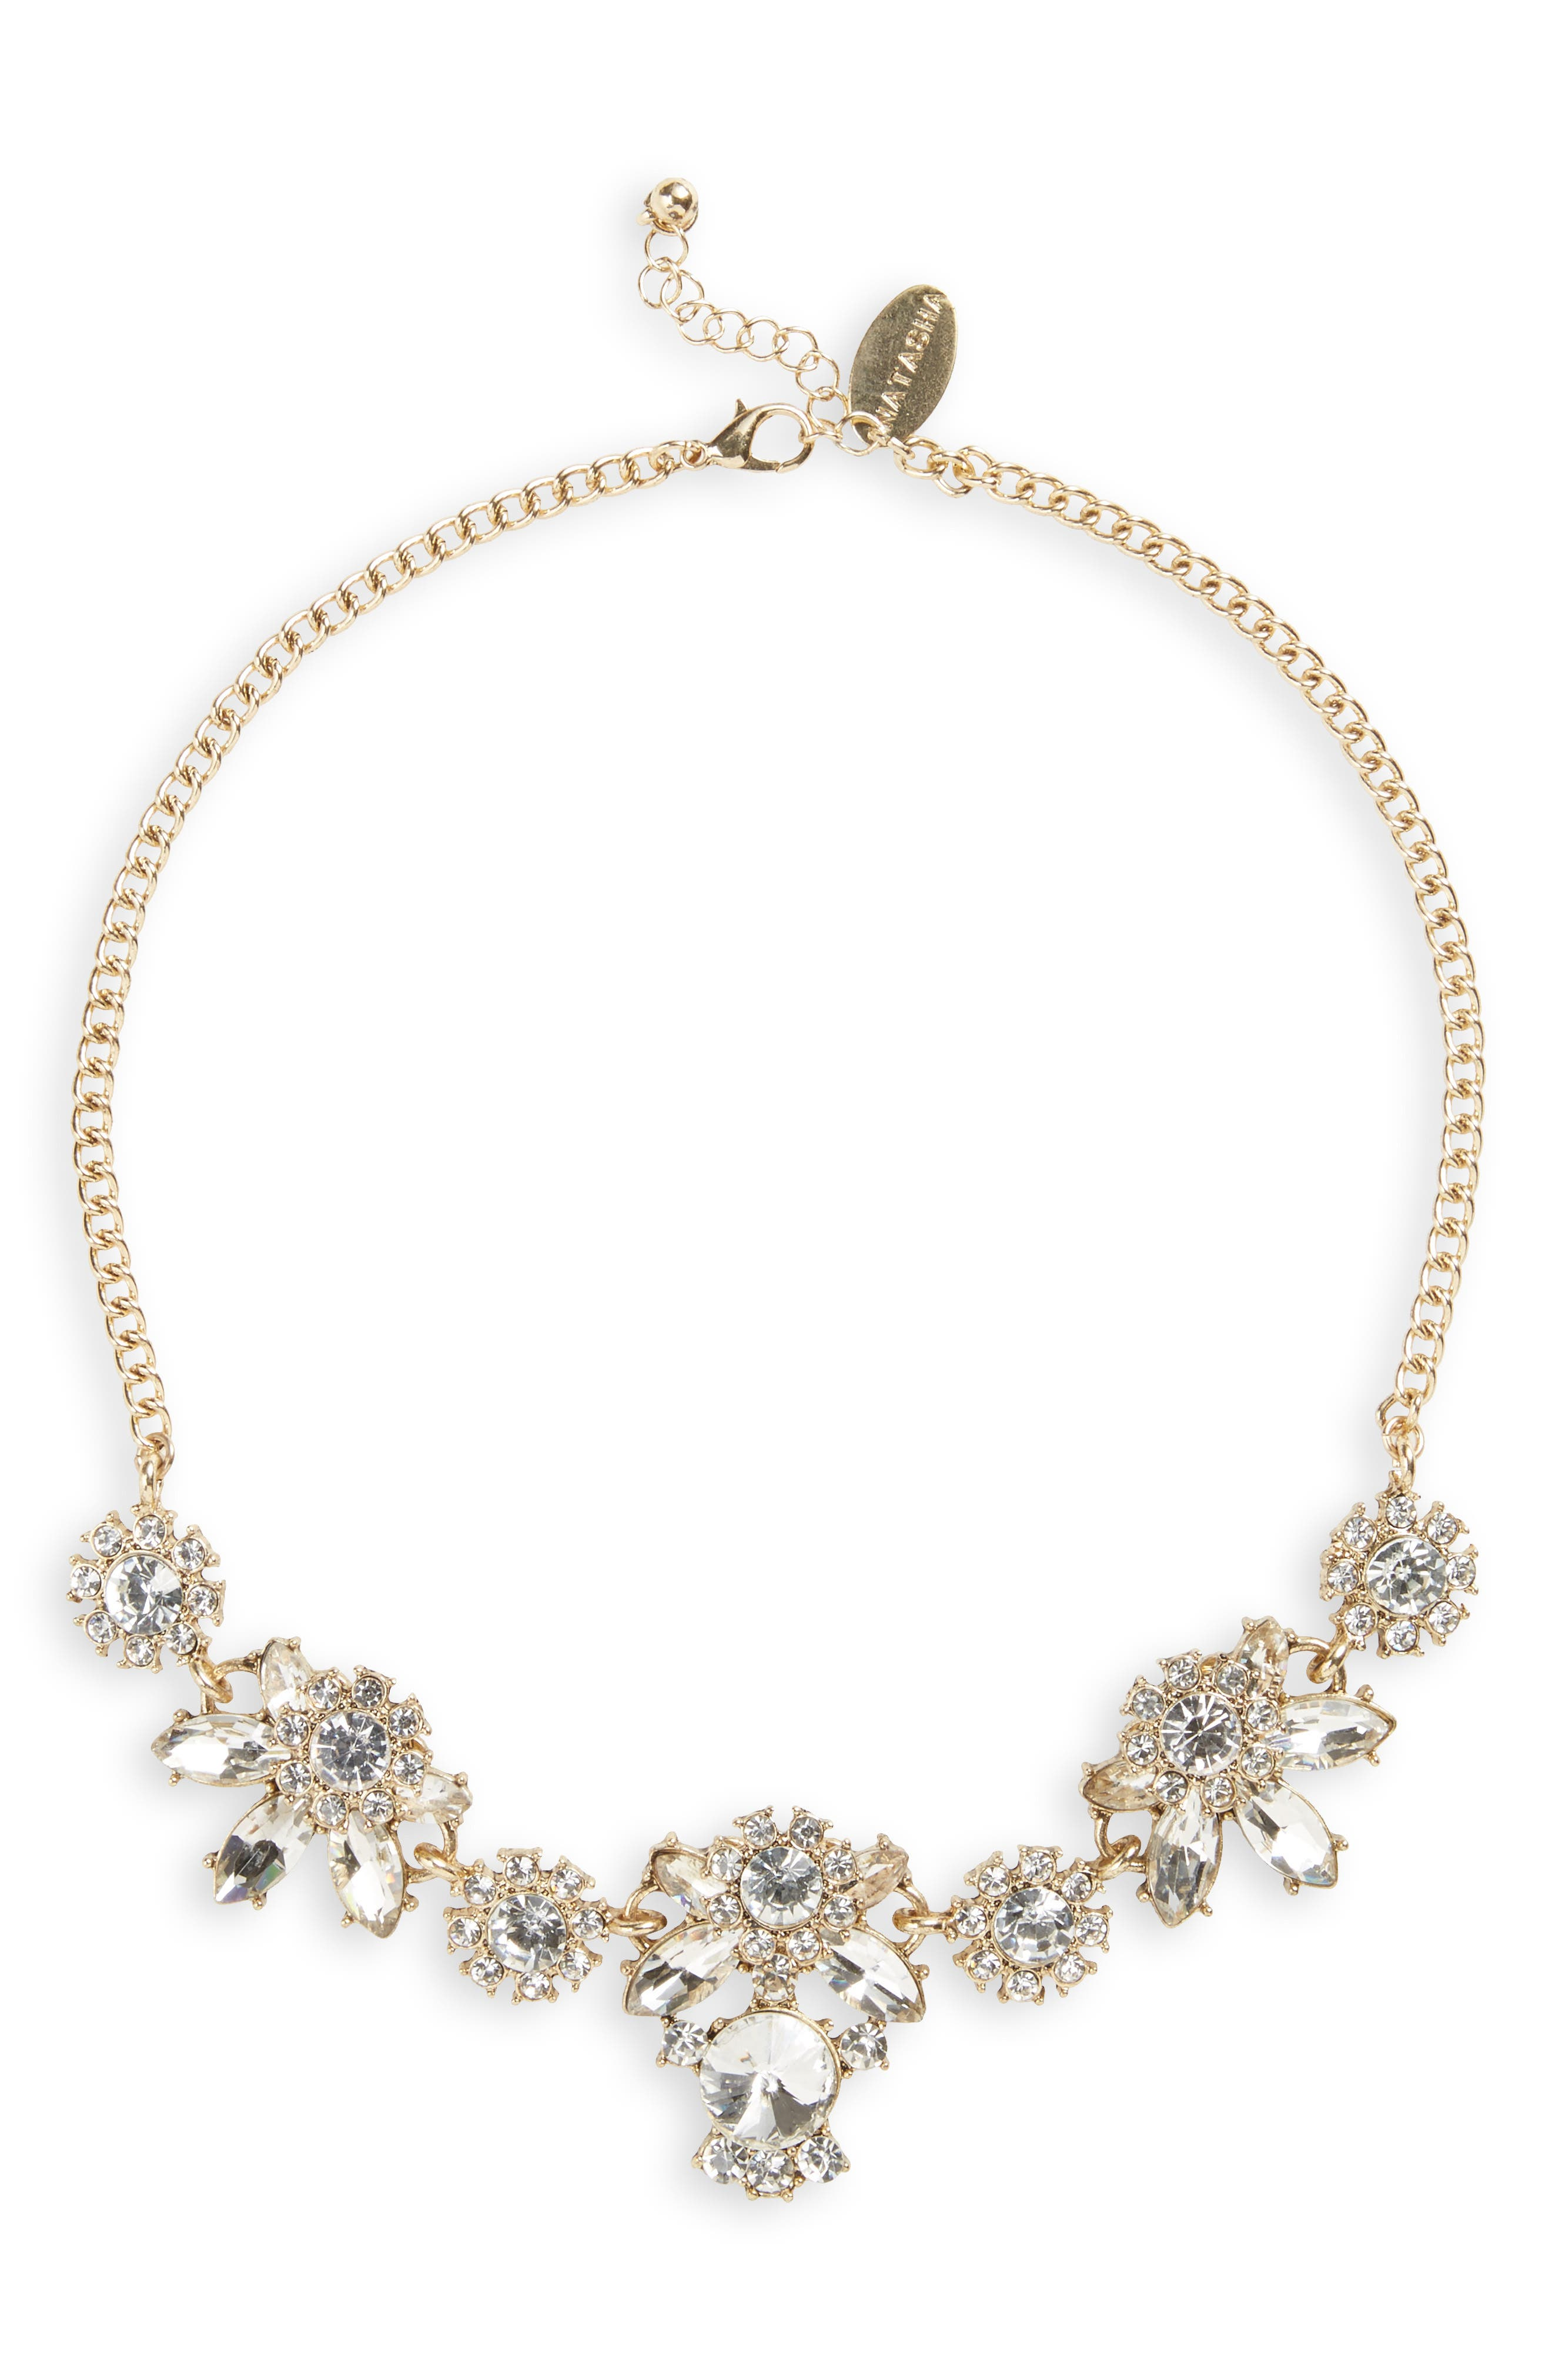 Main Image - Natasha Couture Crystal Statement Necklace